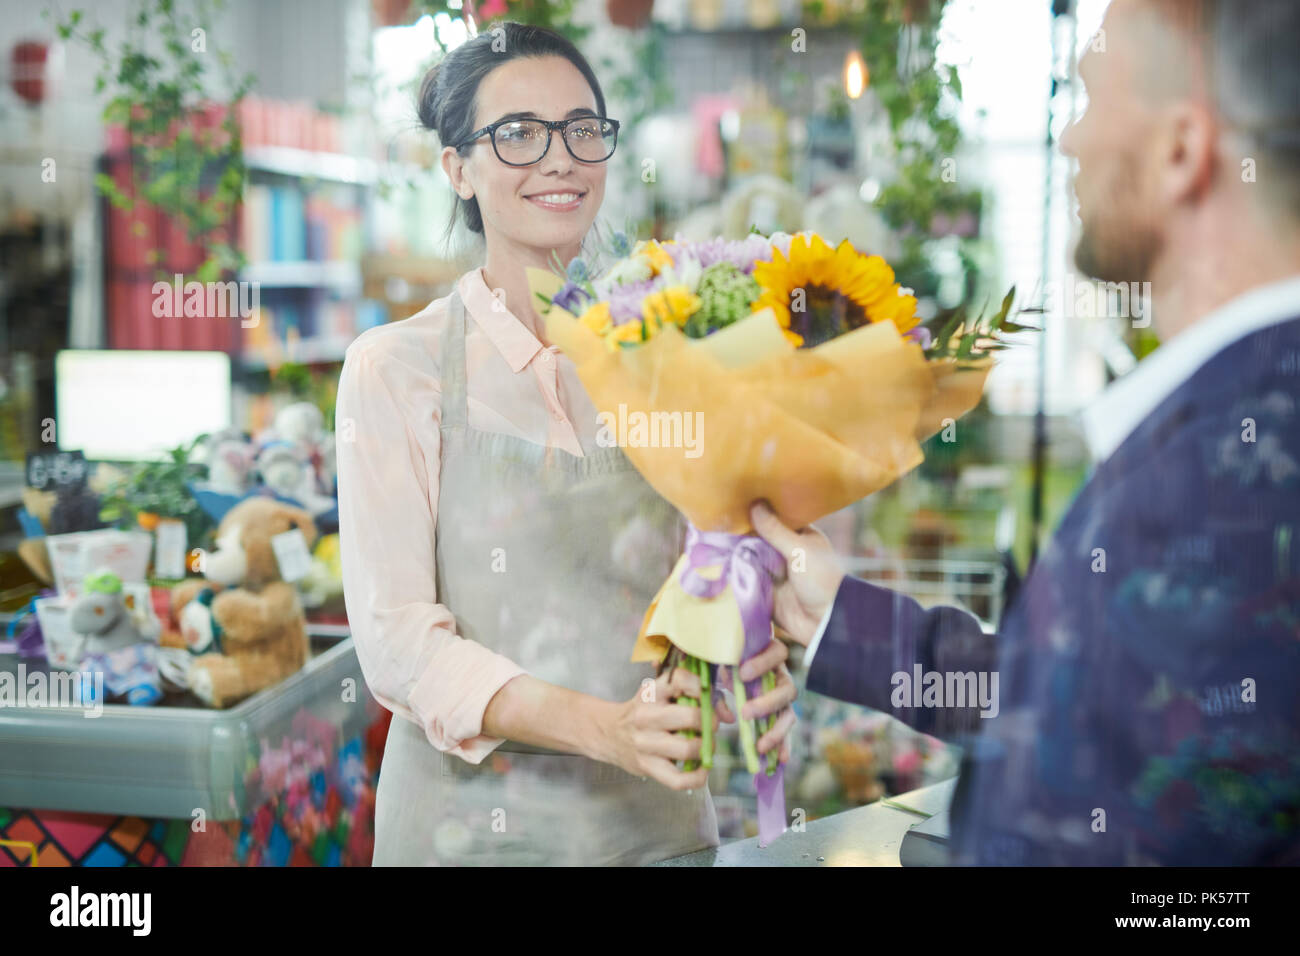 Woman Selling Flowers - Stock Image